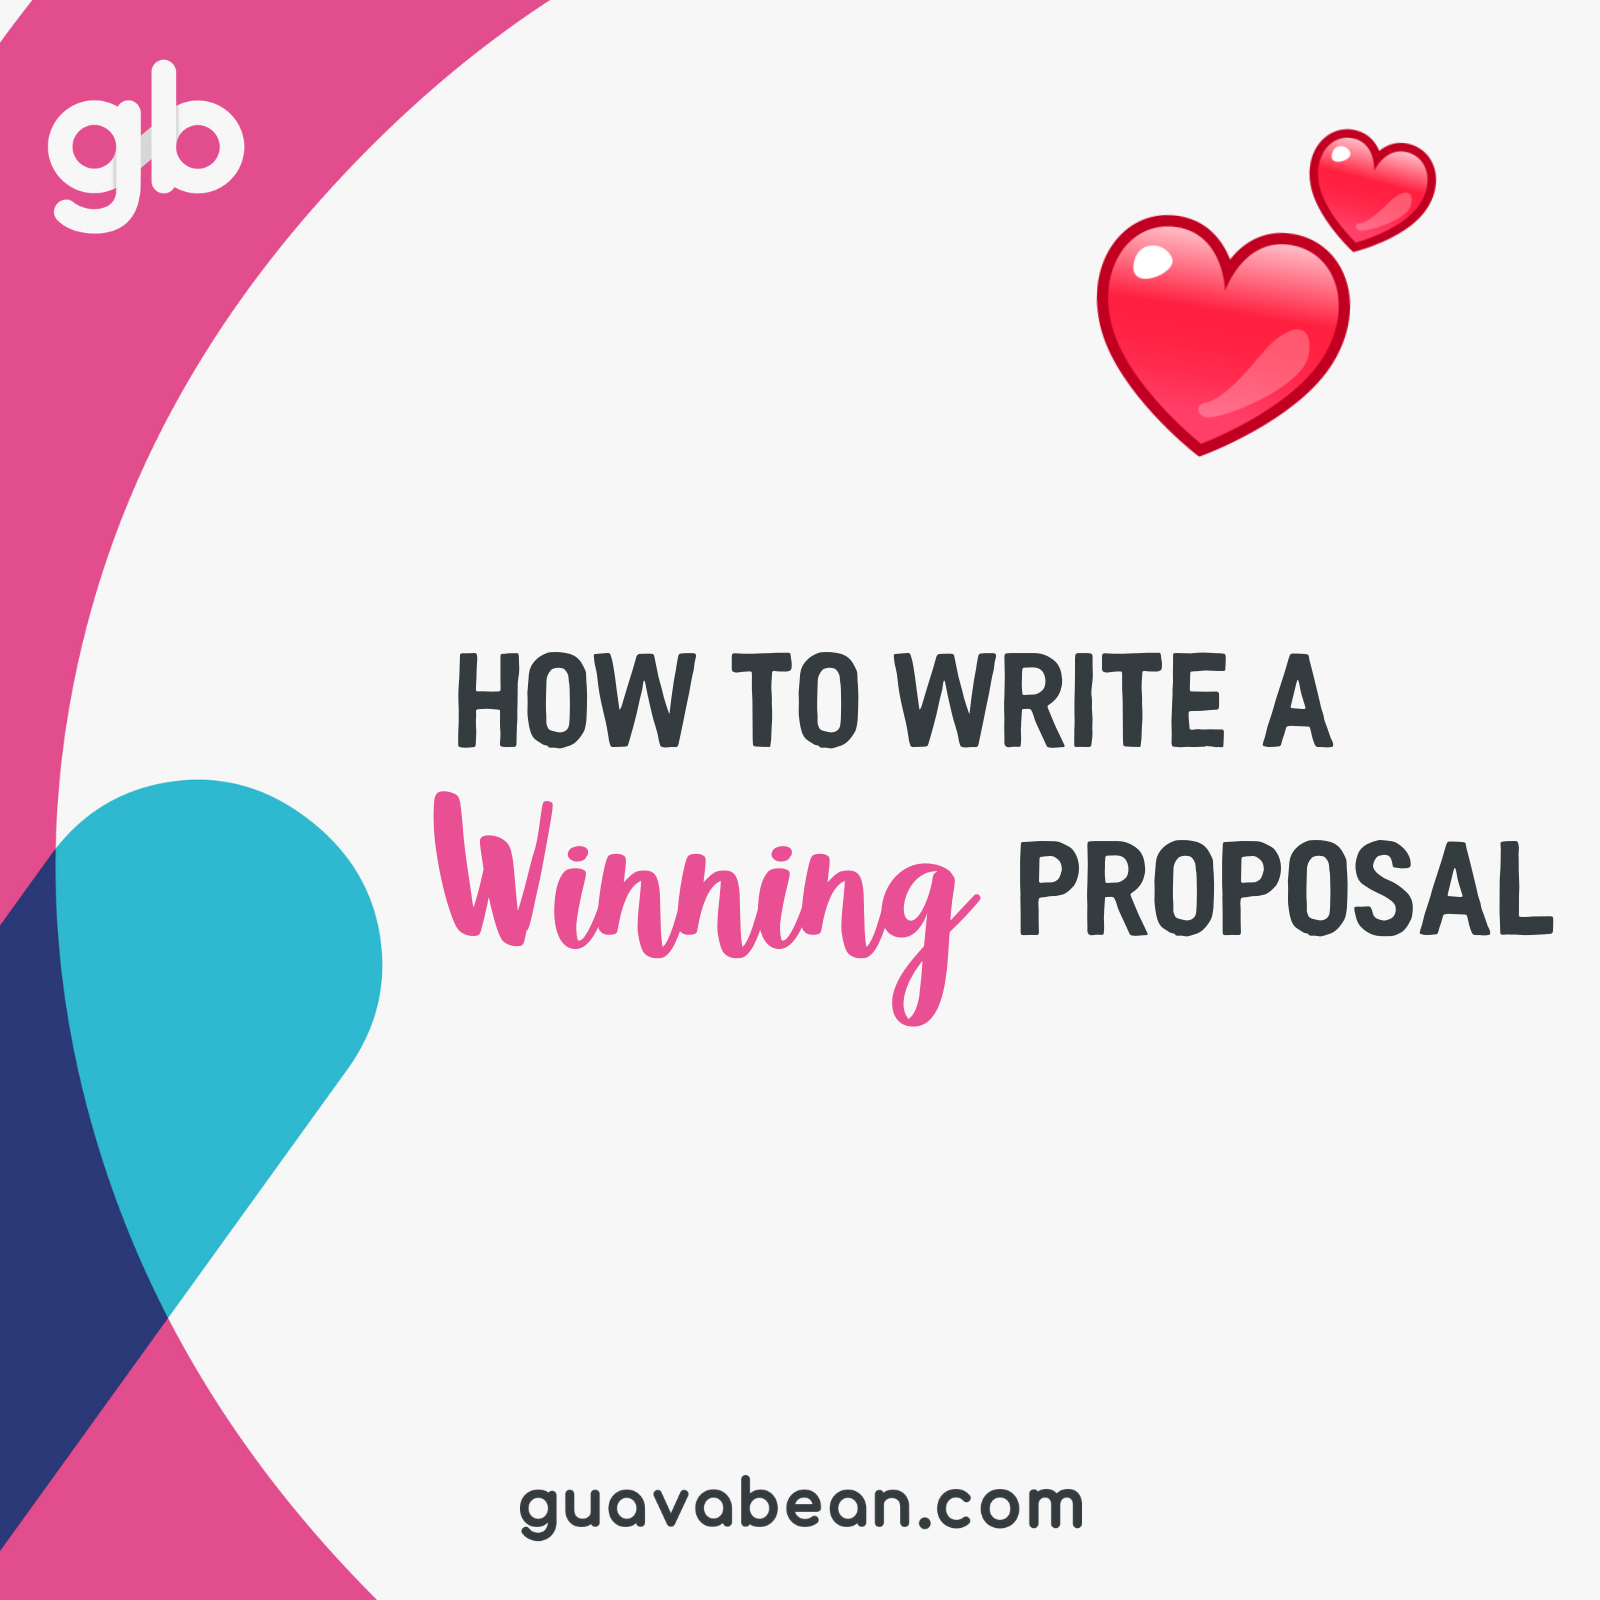 #11. With lots of freelancers gunning for the same positions, it can be a real challenge to stand out. Writing a head-turning proposal is absolutely essential to getting that all important follow-up and interview. -